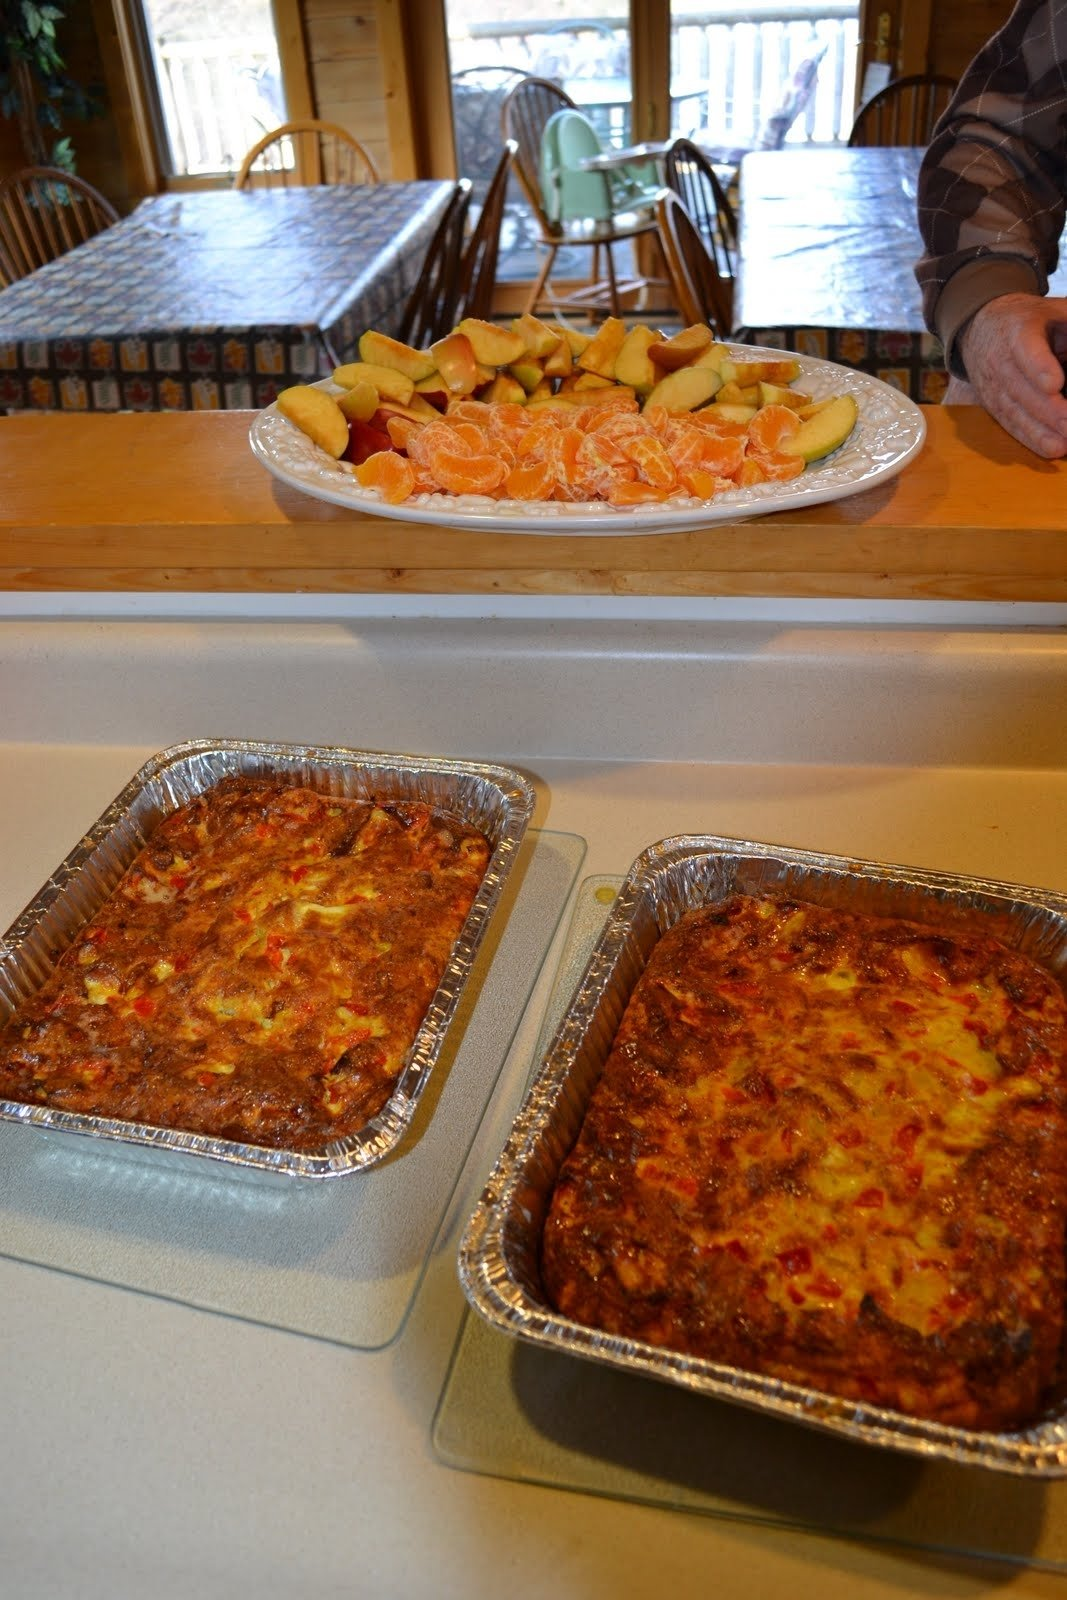 10 Great Dinner Ideas For Large Groups all things gale breakfasts in bulk easy breakfasts to feed a 4 2021